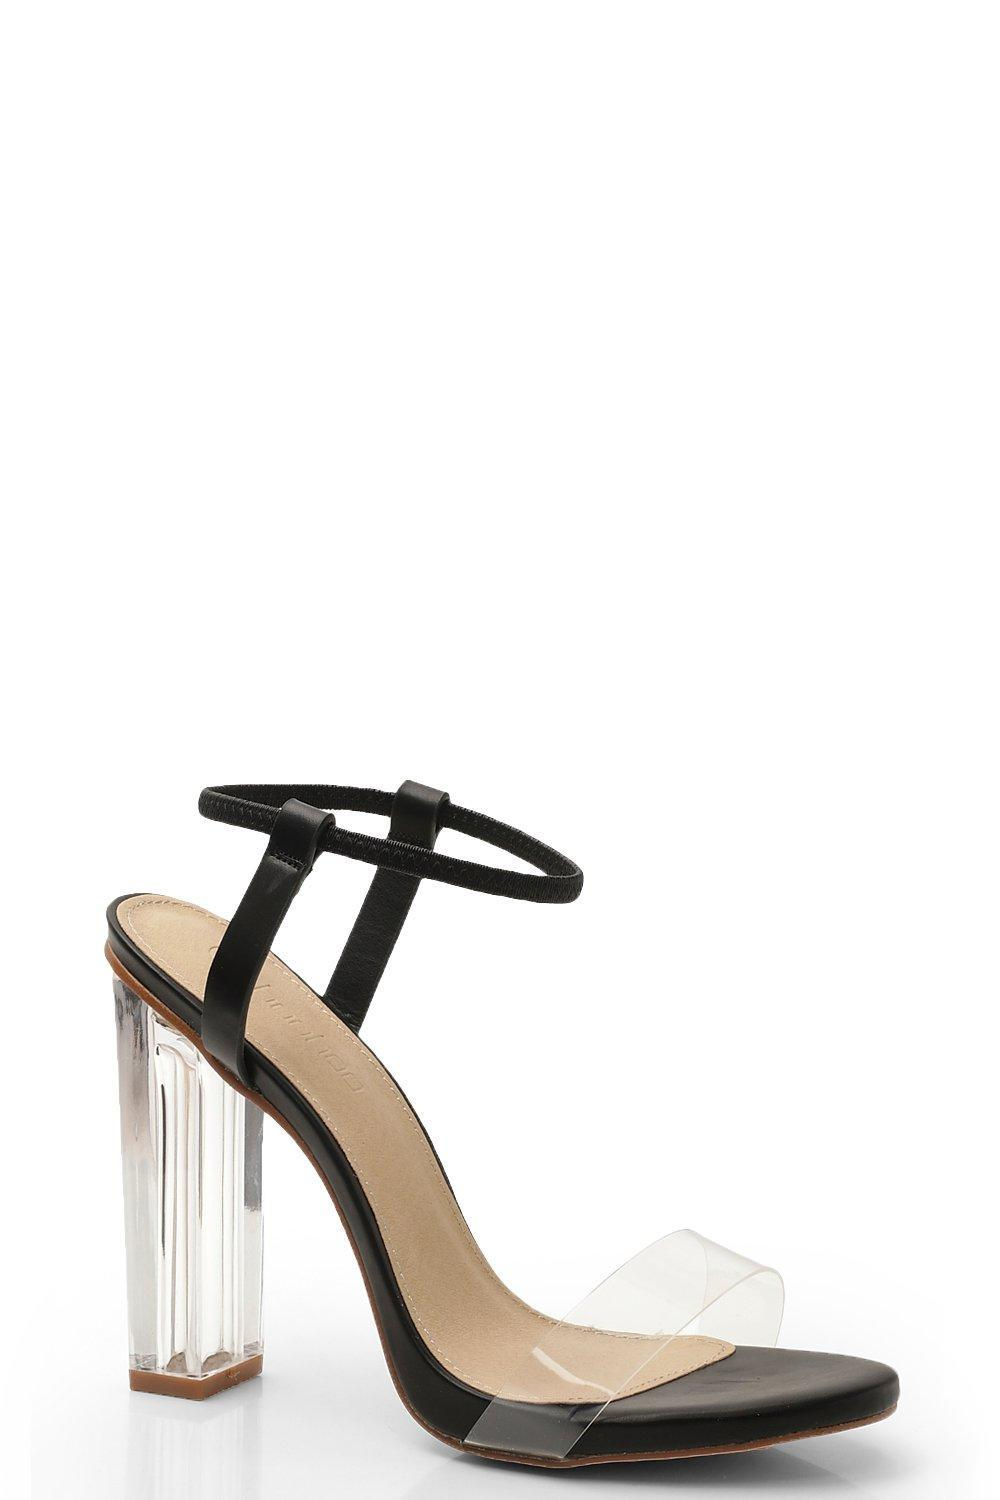 f1284c0fce04 Lyst - Boohoo Halo Ankle Band Clear Heel 2 Parts in Black